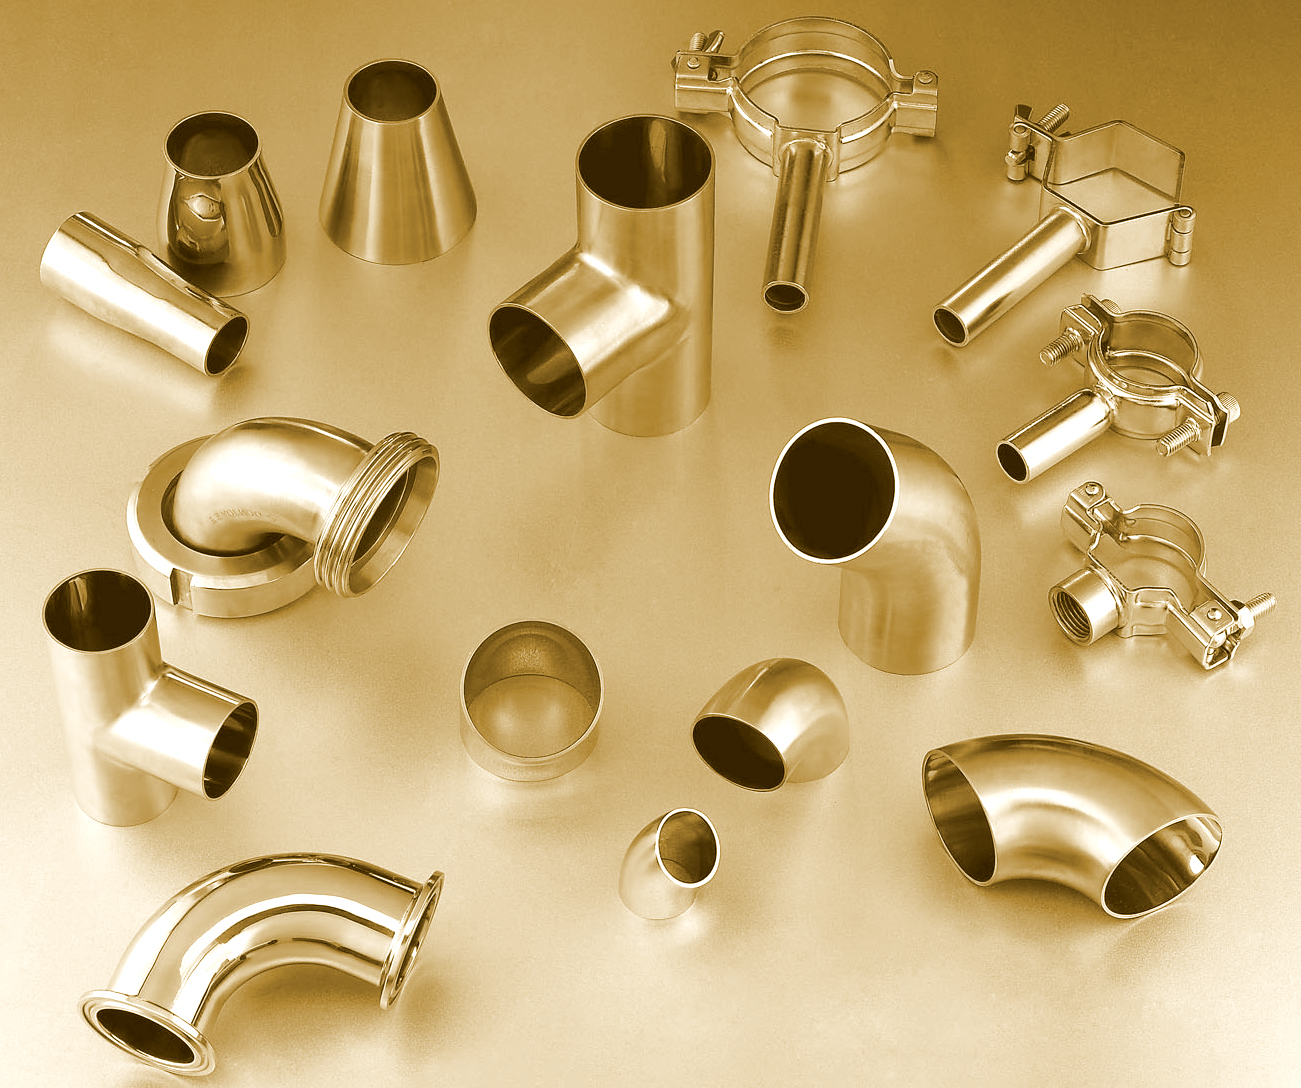 Pipe Joints And Fittings : Pipe fittings carrying the basic utility services for us